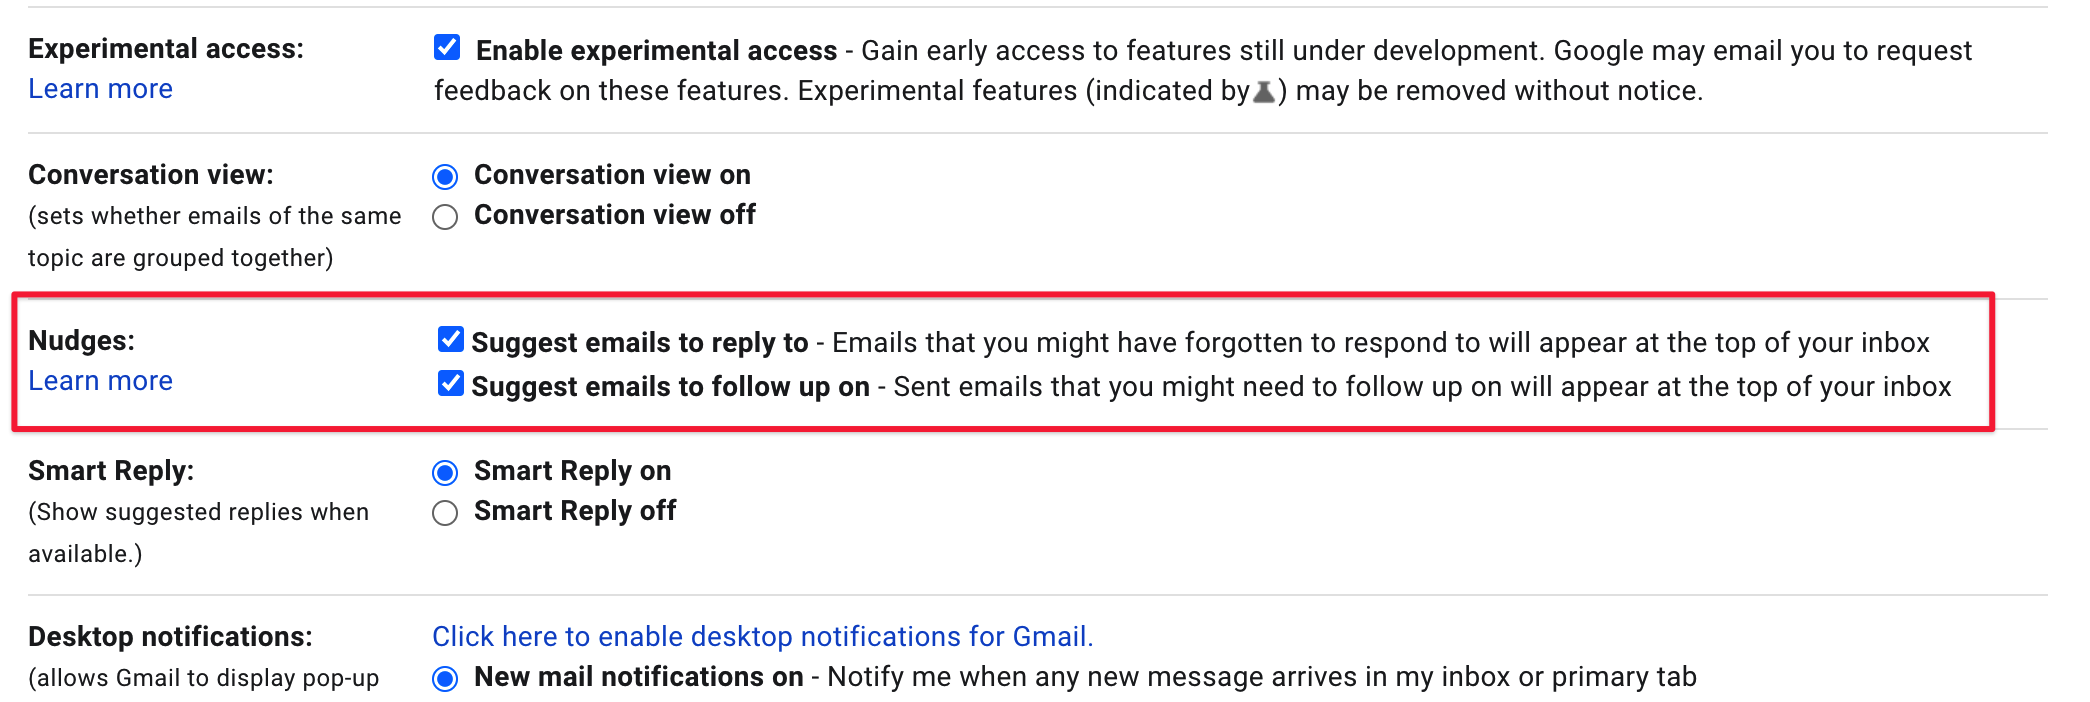 Nudges in Gmail screenshot